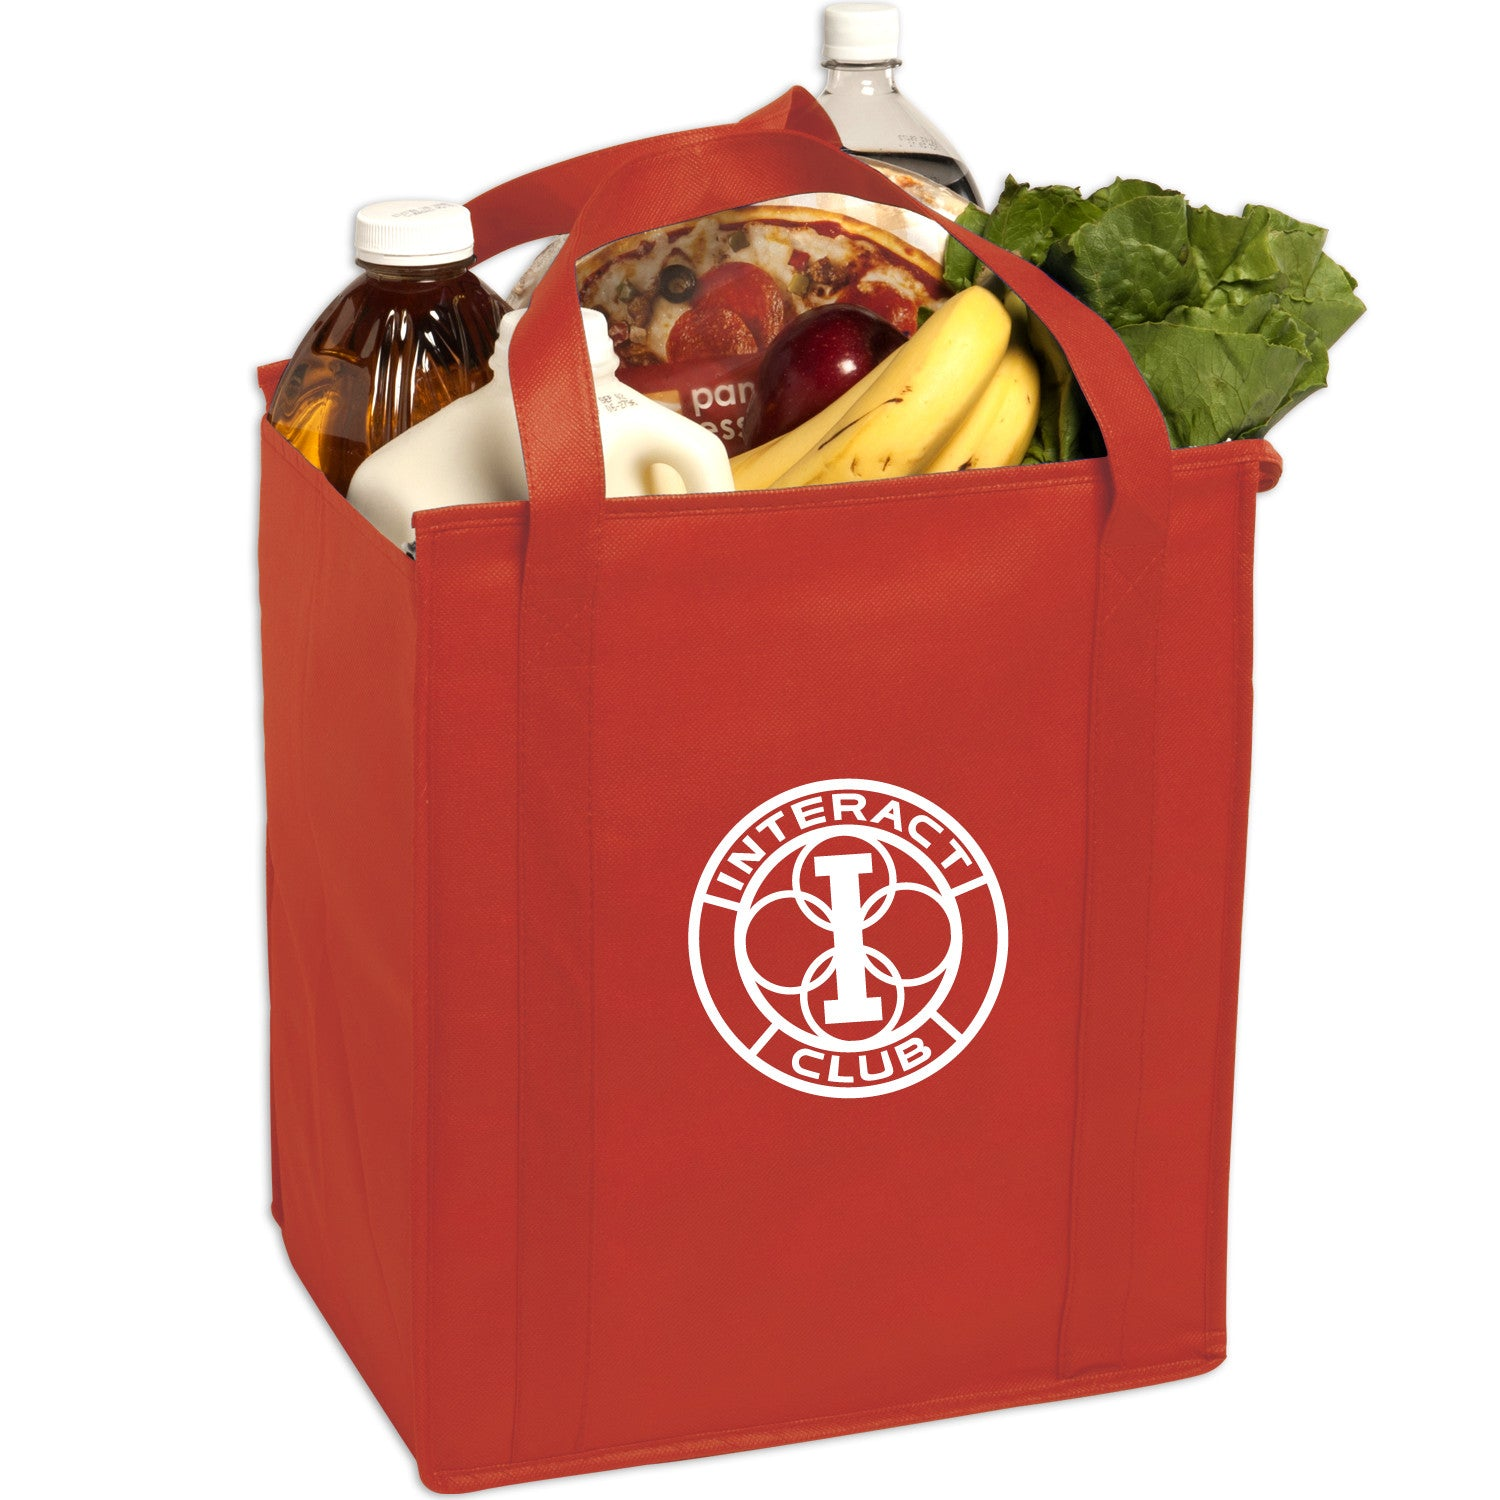 Insulated Grocery Tote Bags